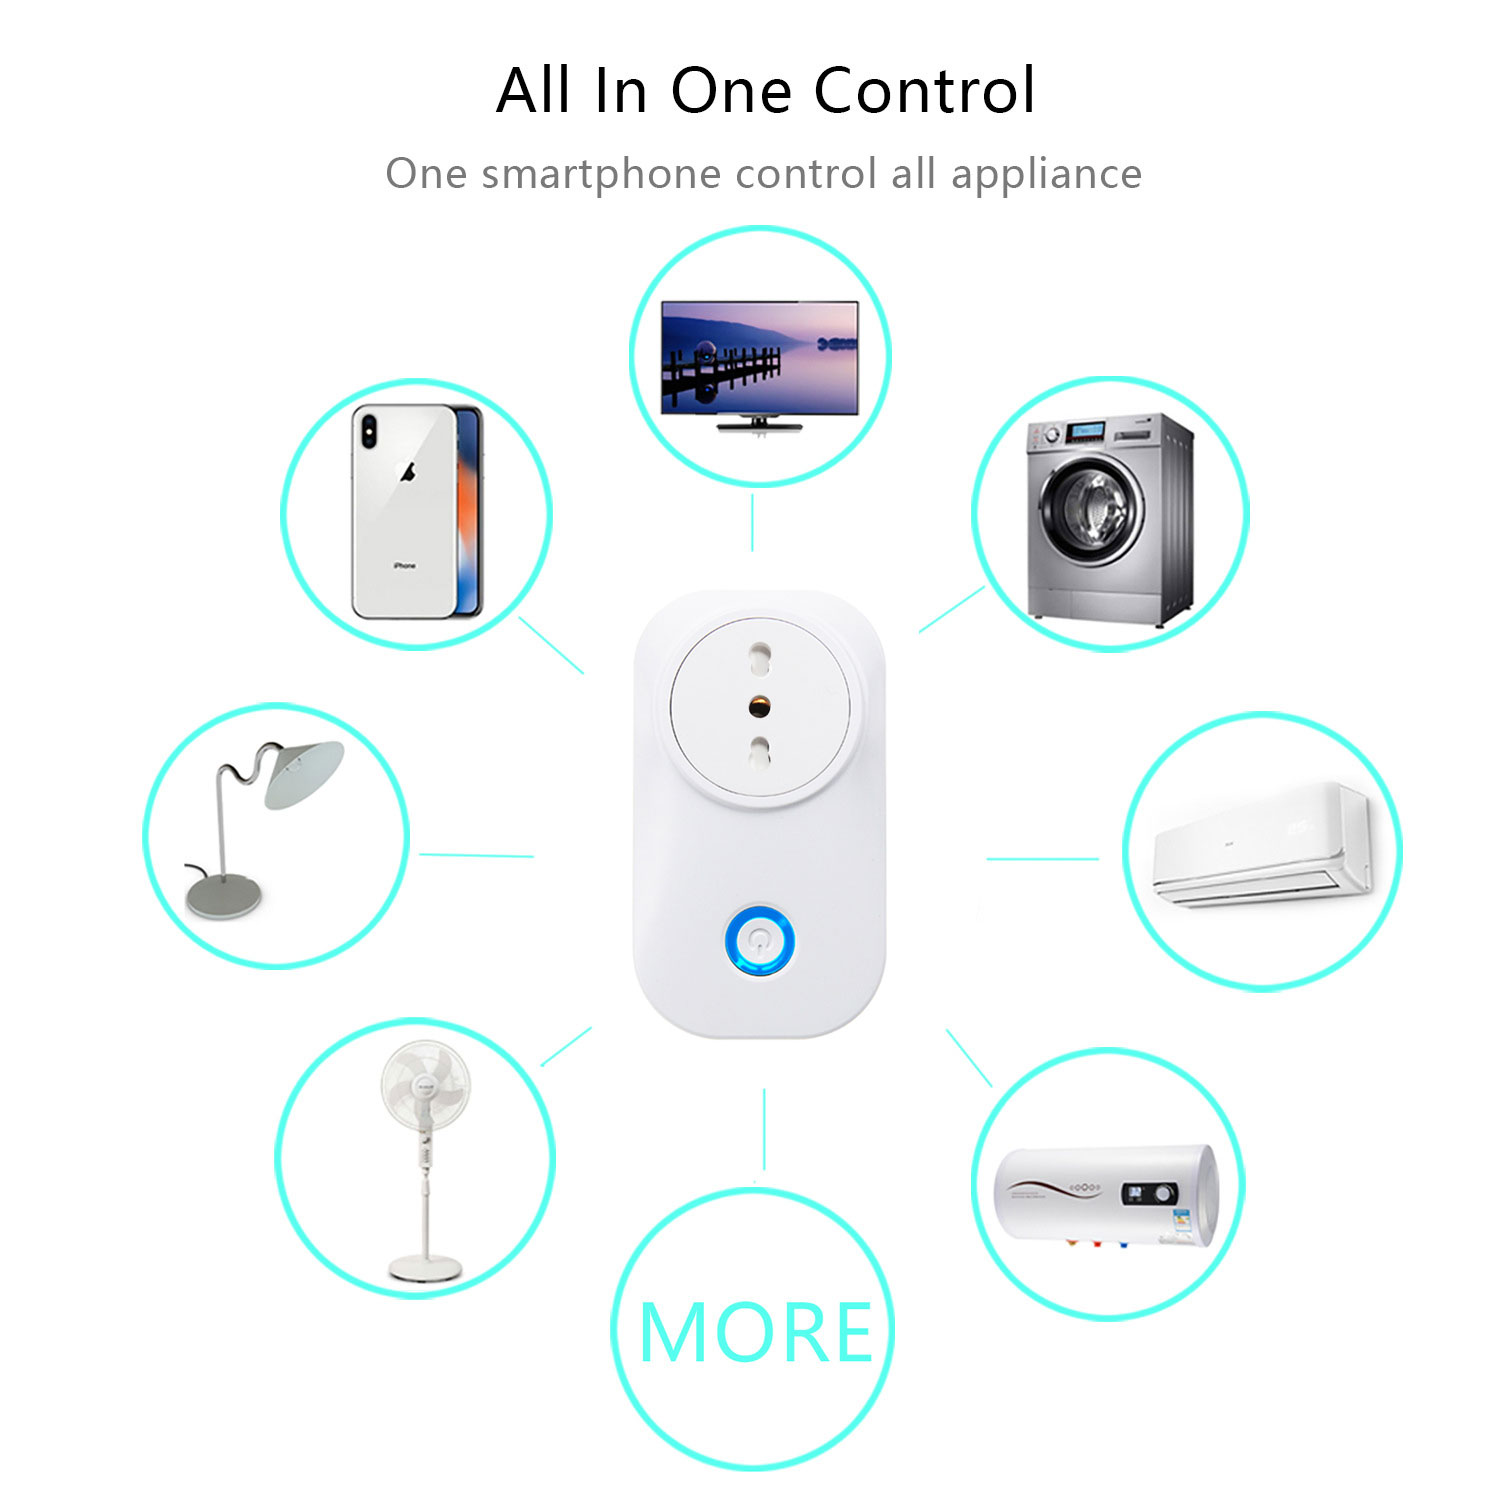 Hb3c82672ec3144e0a06594379bbba722y - Chile Smart Plug Italy Wifi Socket Plug IT CL 16A Power Monitor Voice Control Works With Alexa Google Home Tuya Smart Life